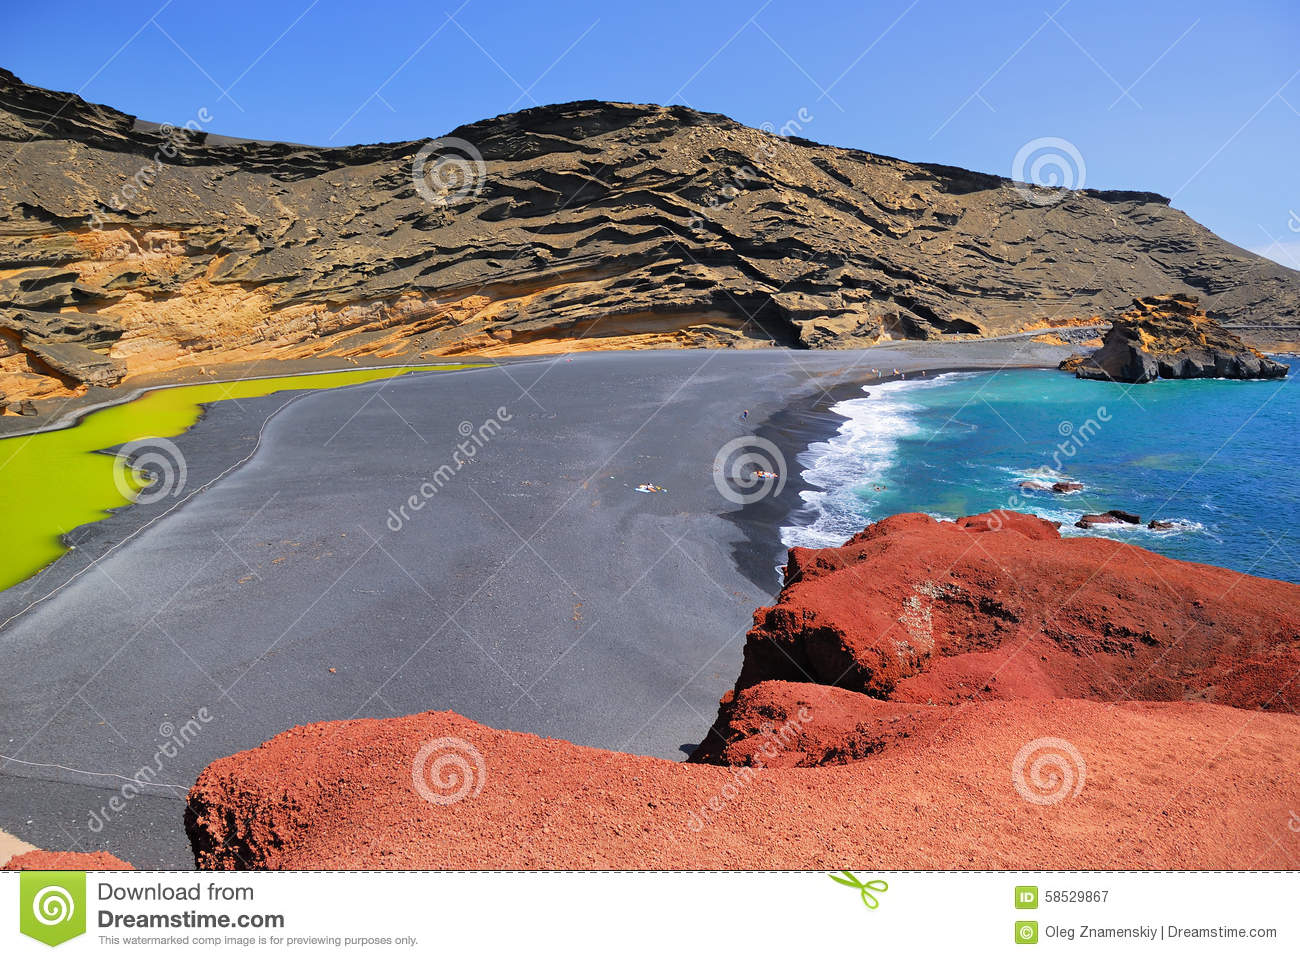 El Golfo, Lanzarote, Spain Stock Photo.